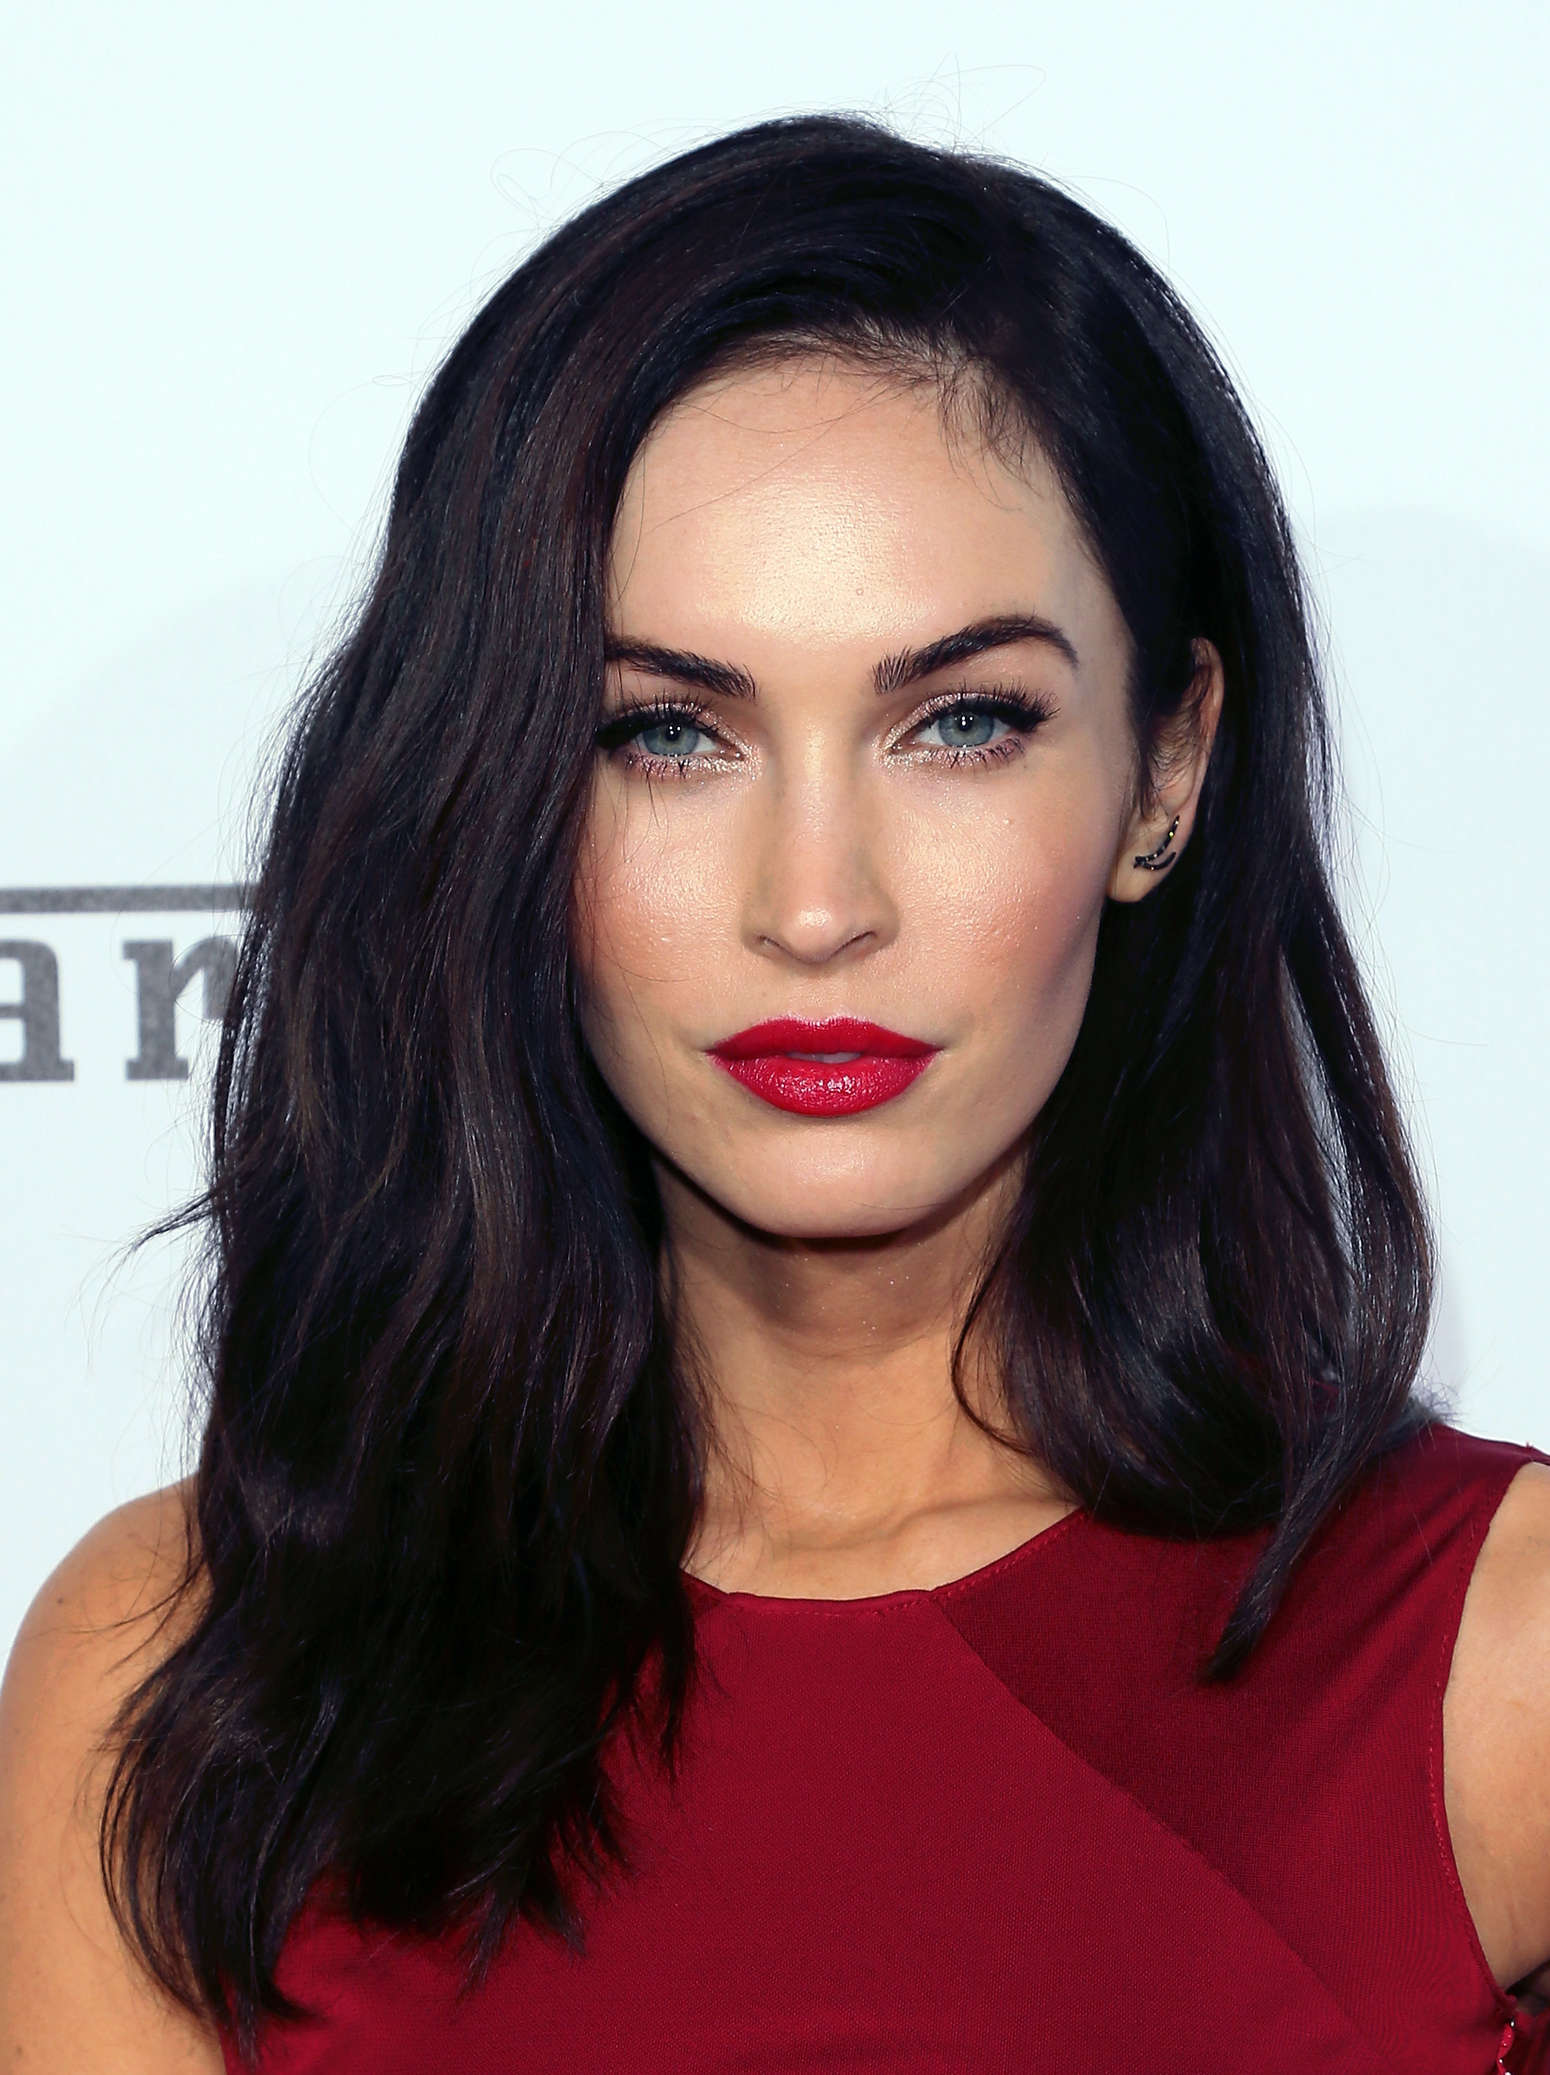 megan fox - photo #22